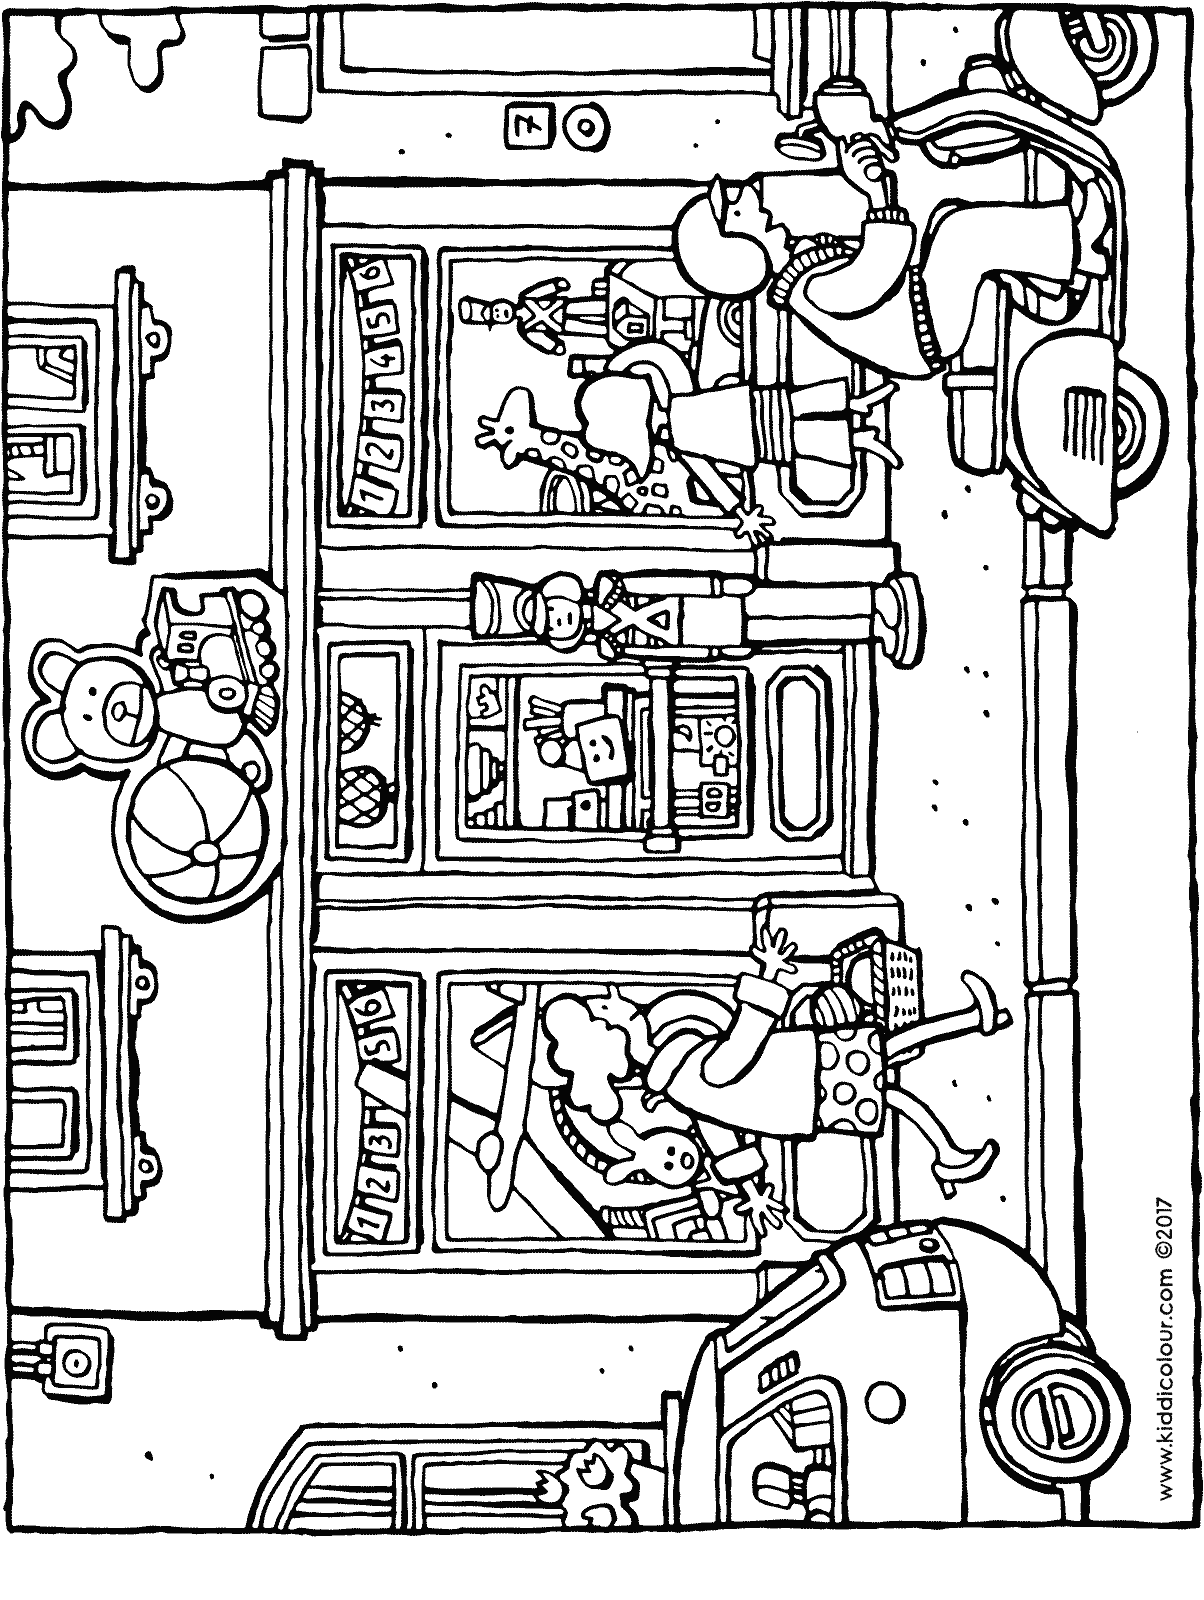 toy shop colouring page drawing picture 01H